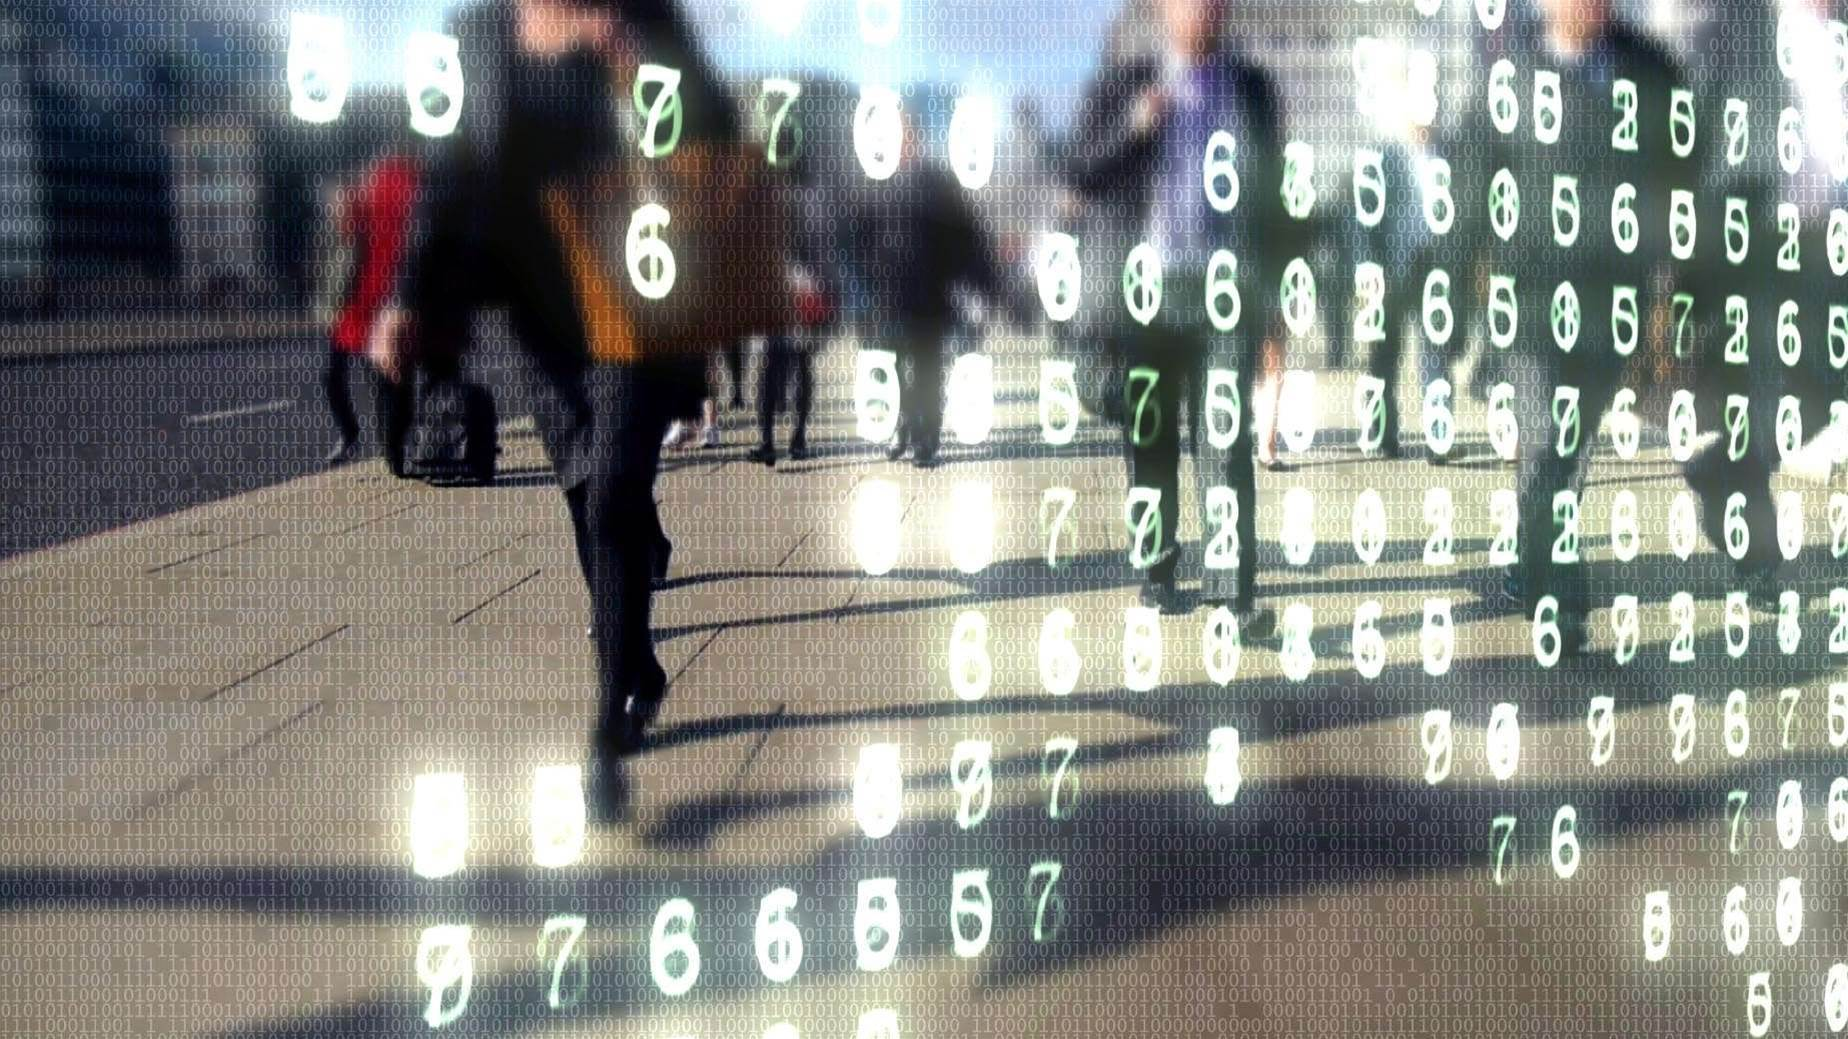 IoT pushes limits of analytics